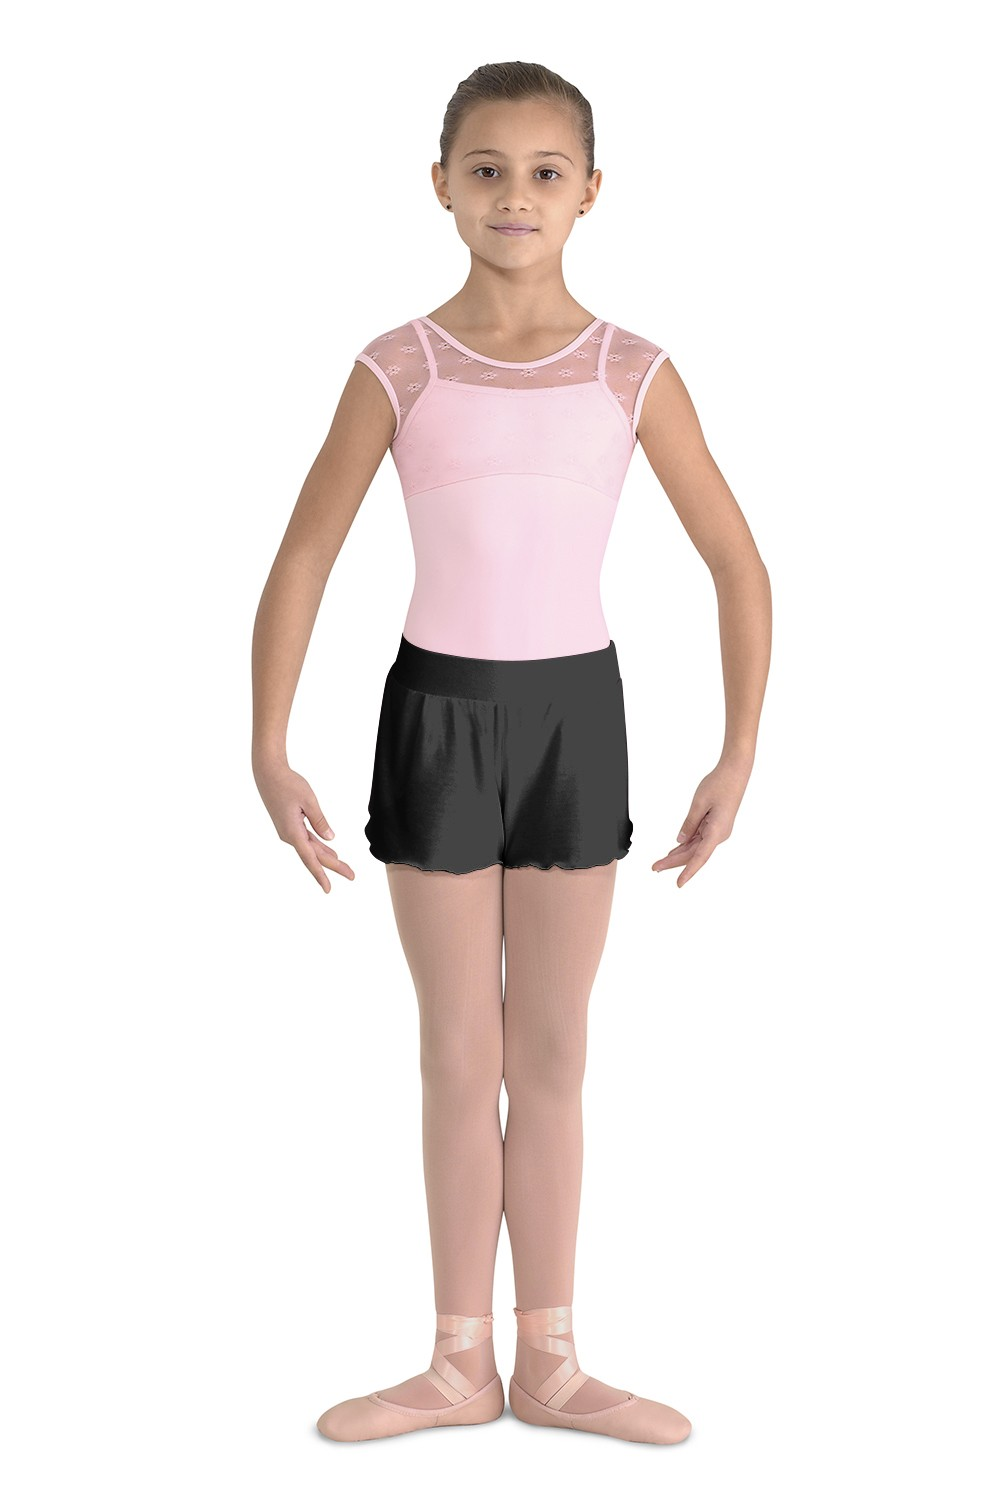 Jersey Short Children's Dance Shorts